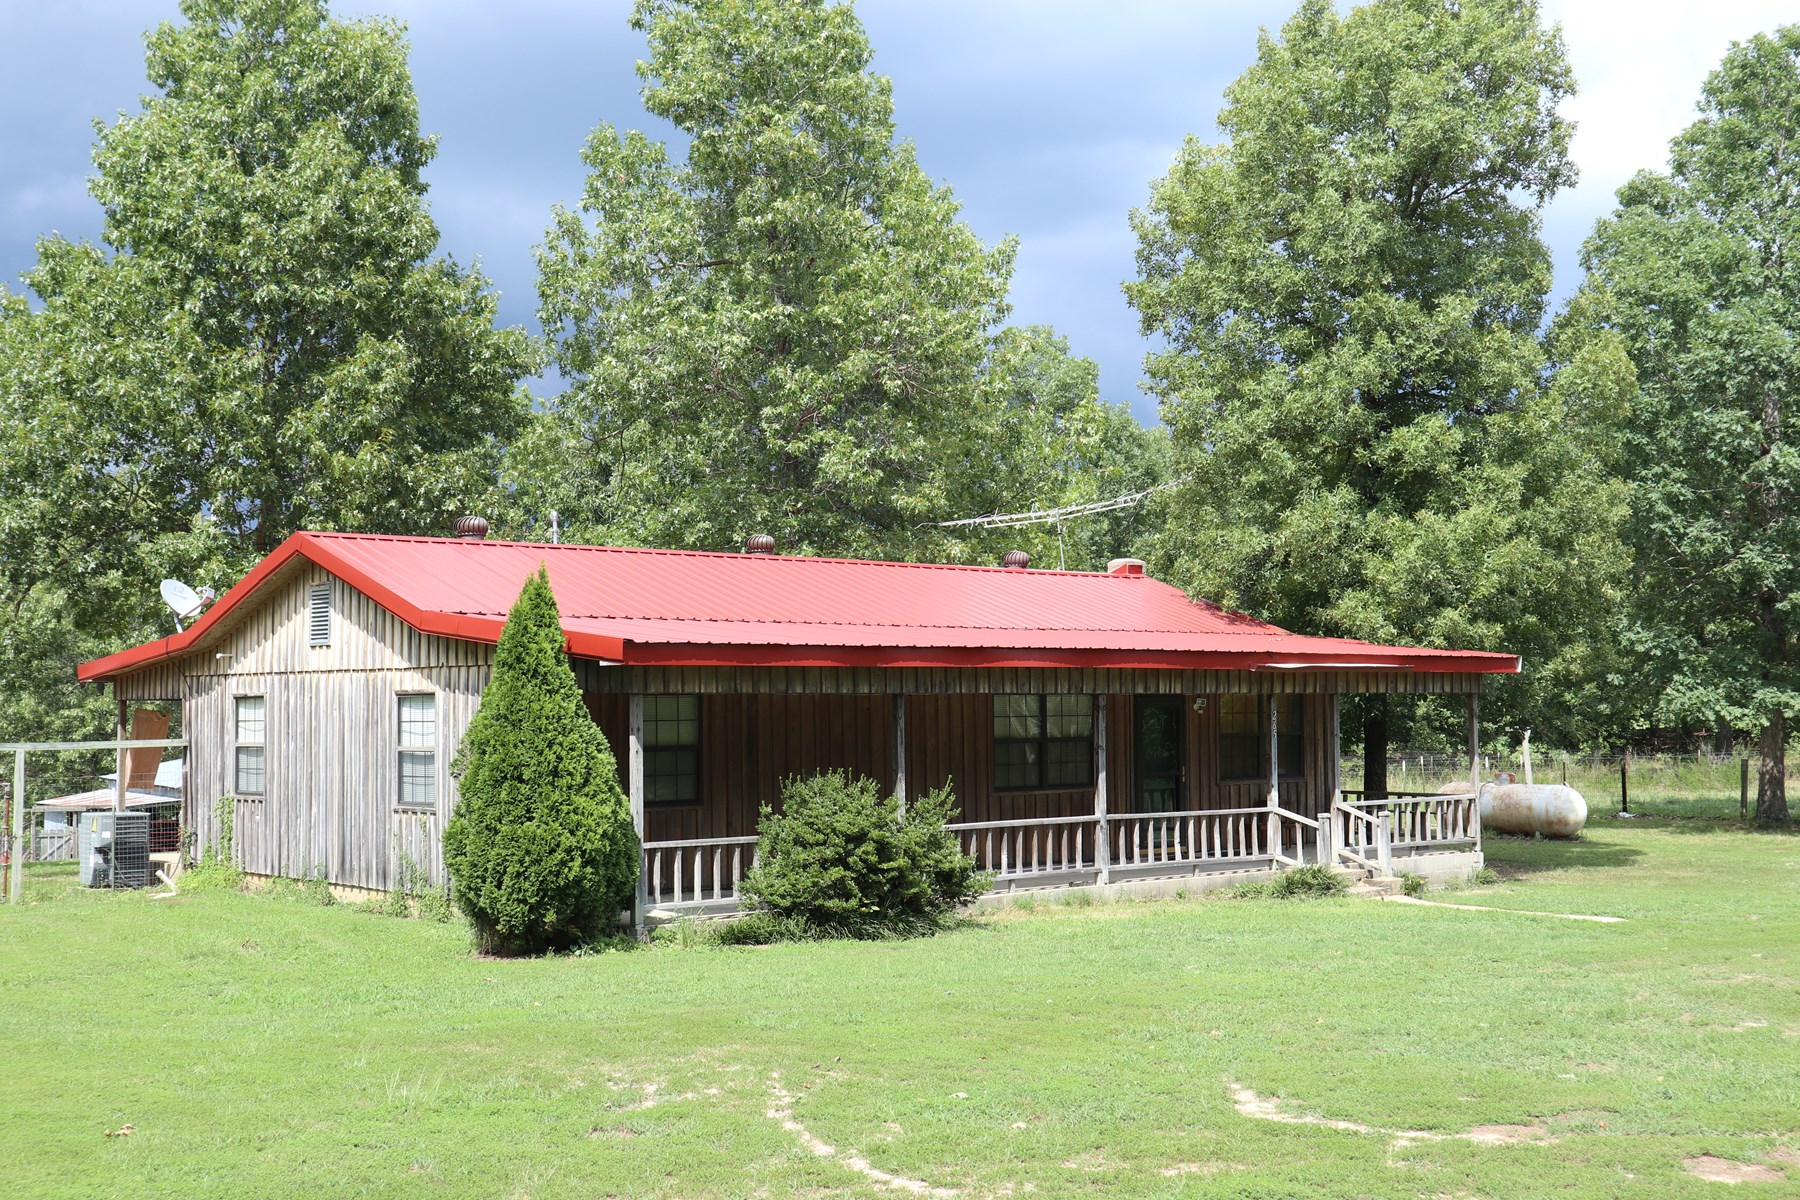 Prime Hunting Property with Rustic Home for sale near Salem